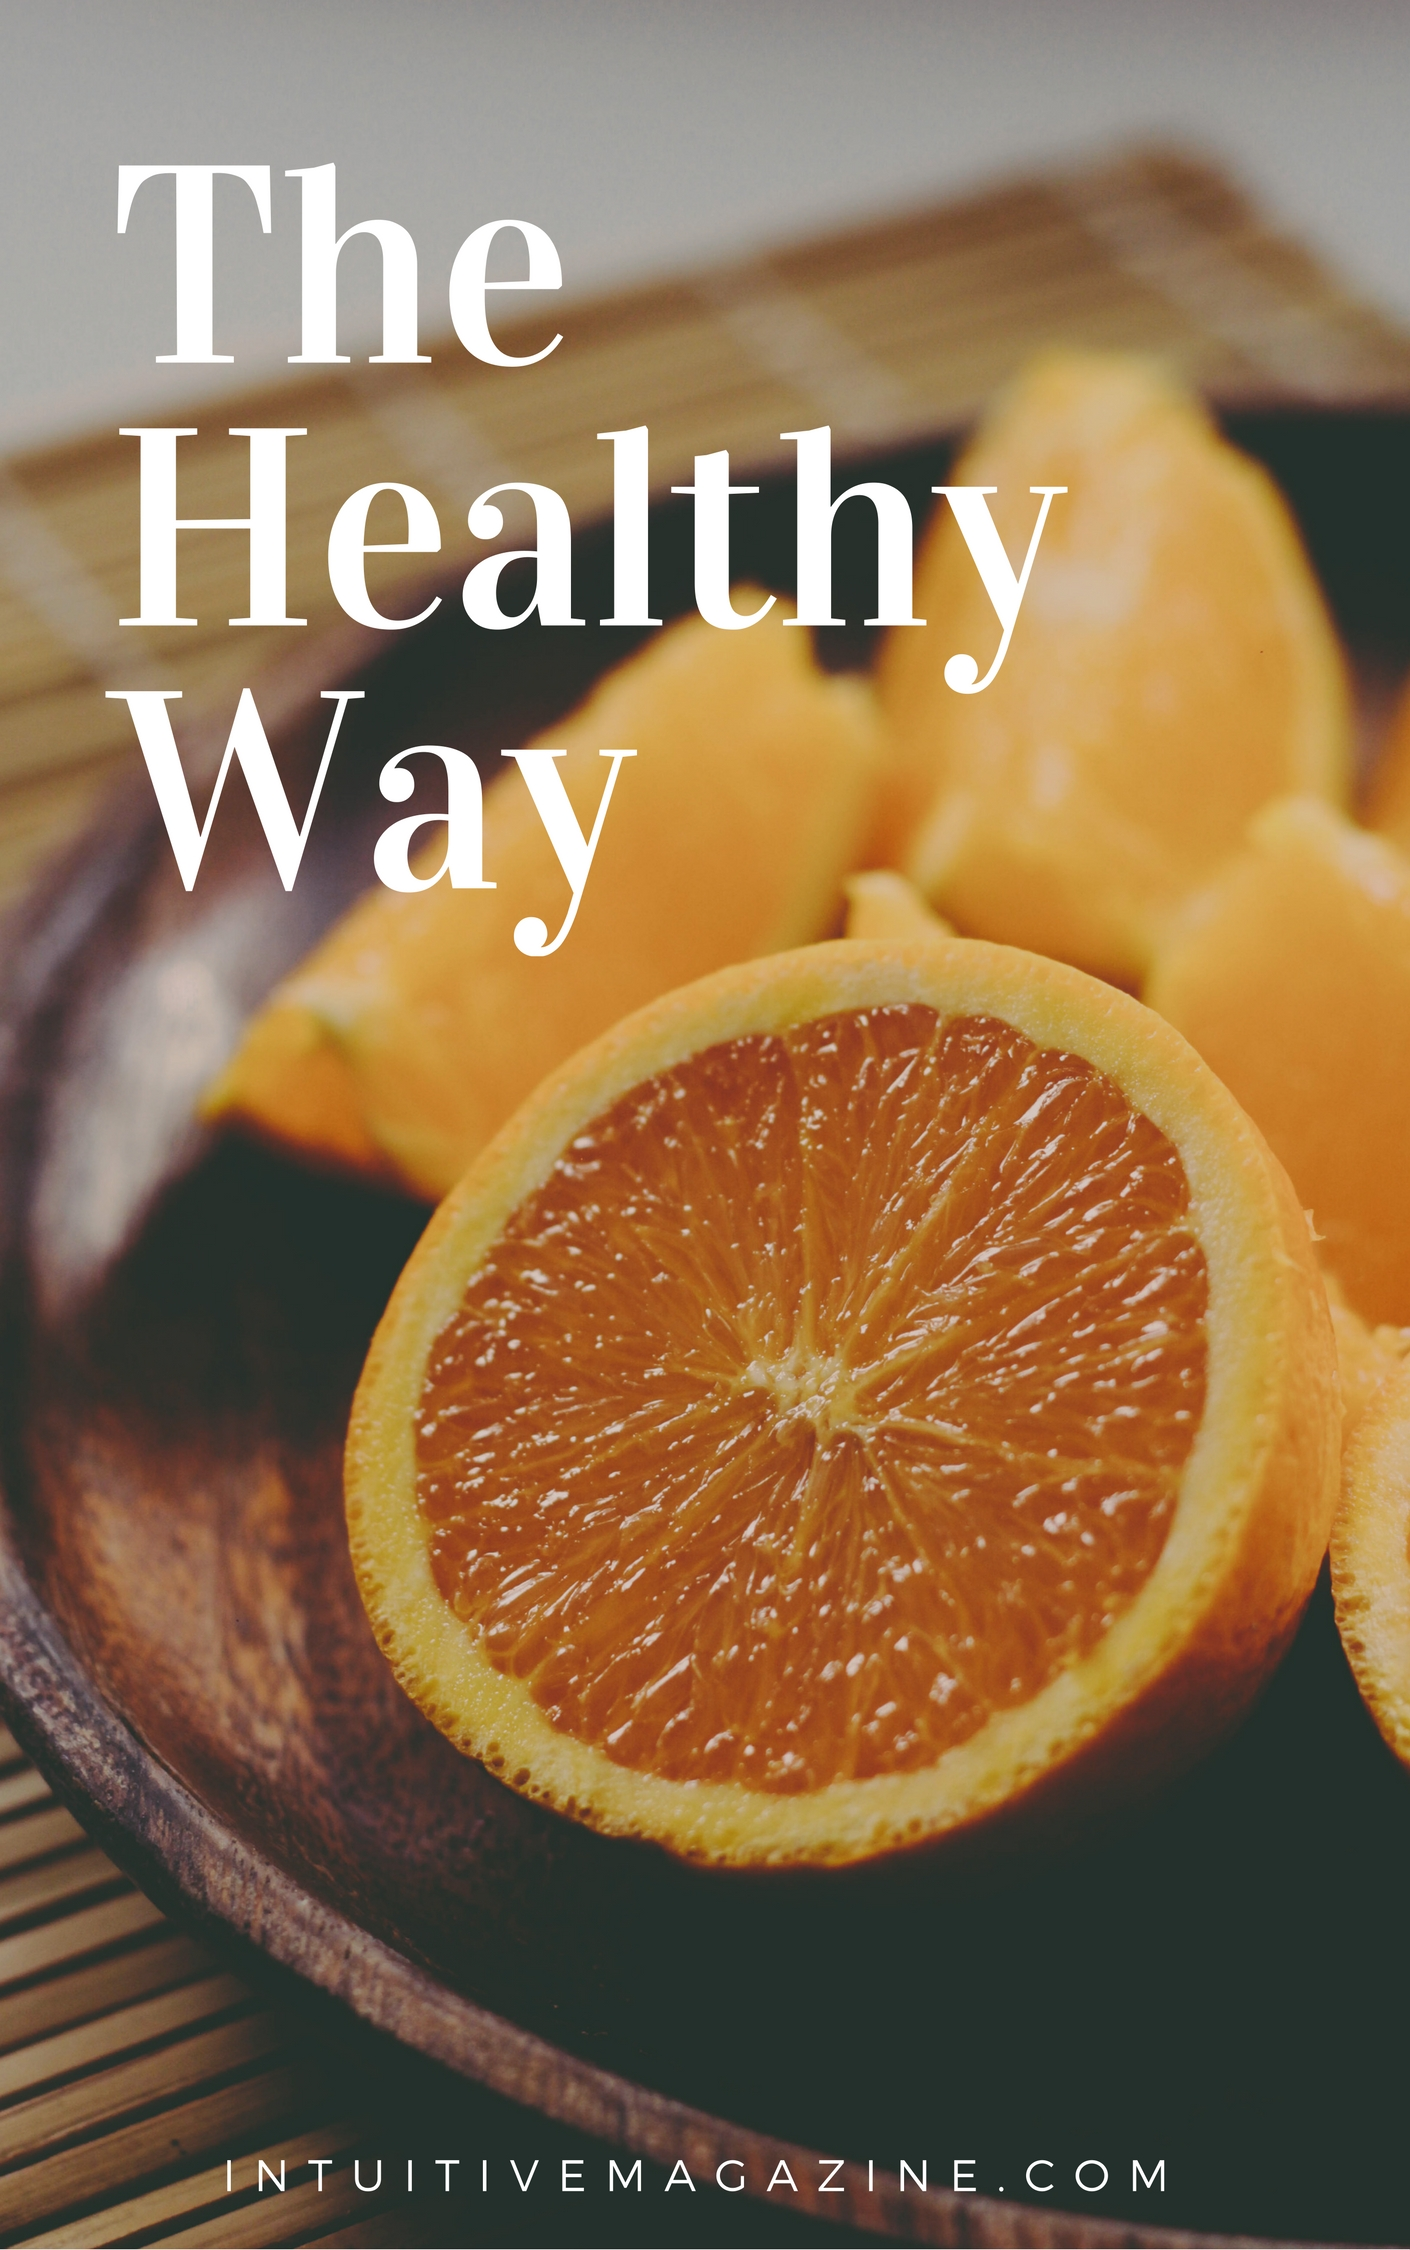 thehealthyway